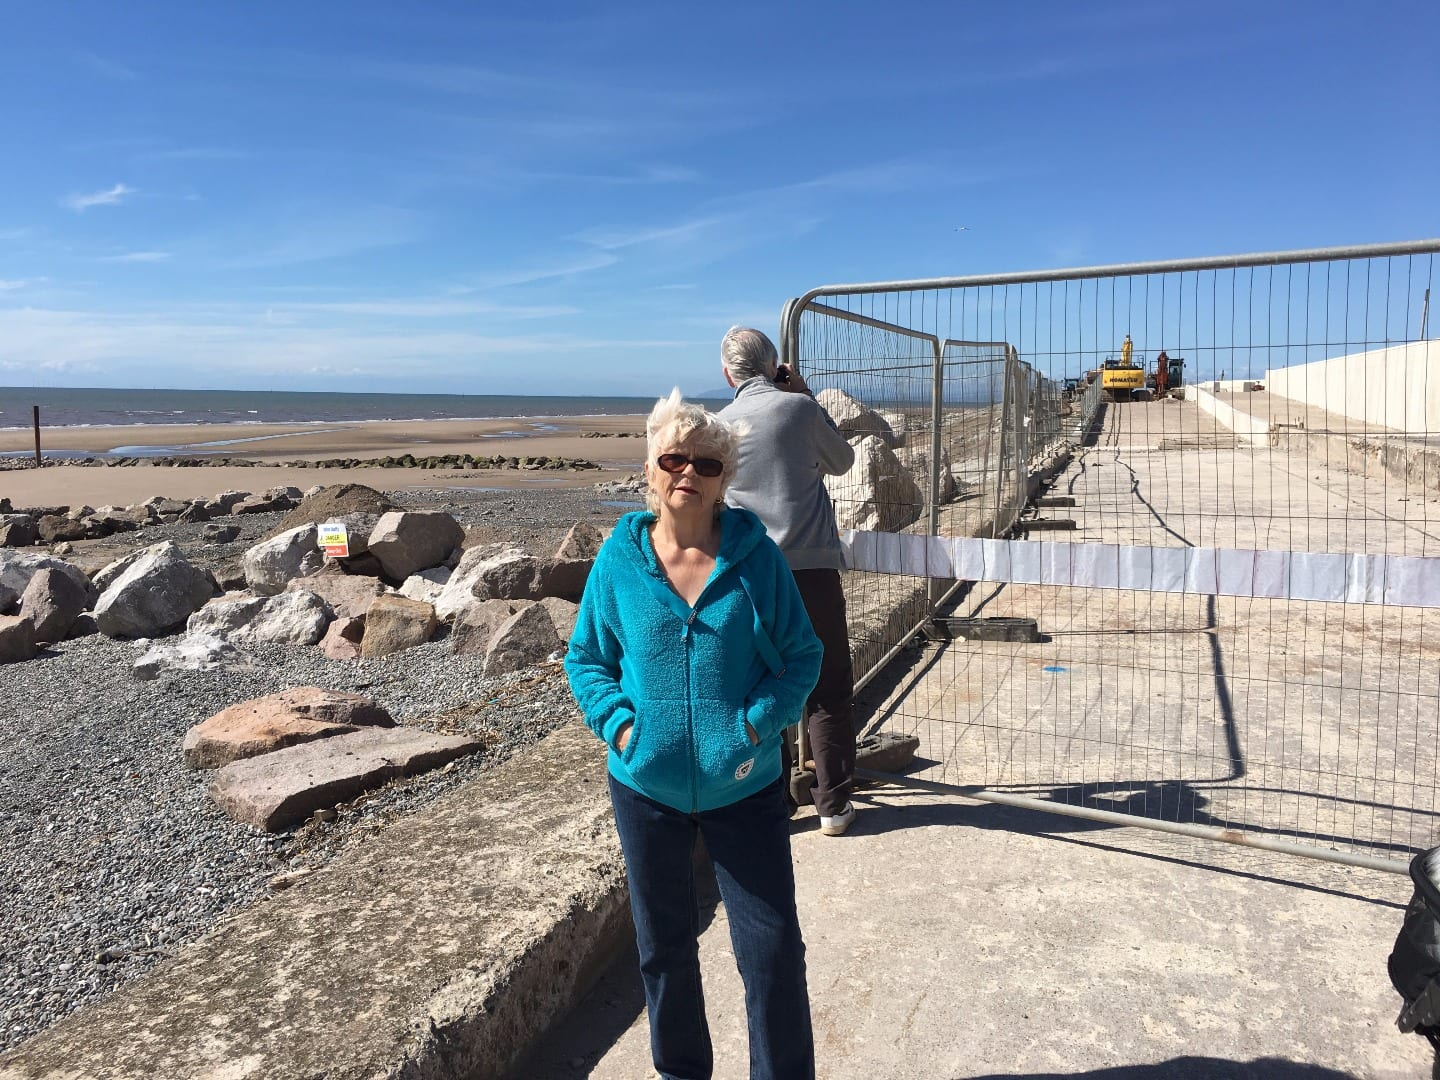 Rossall Sea Defences at Fairway